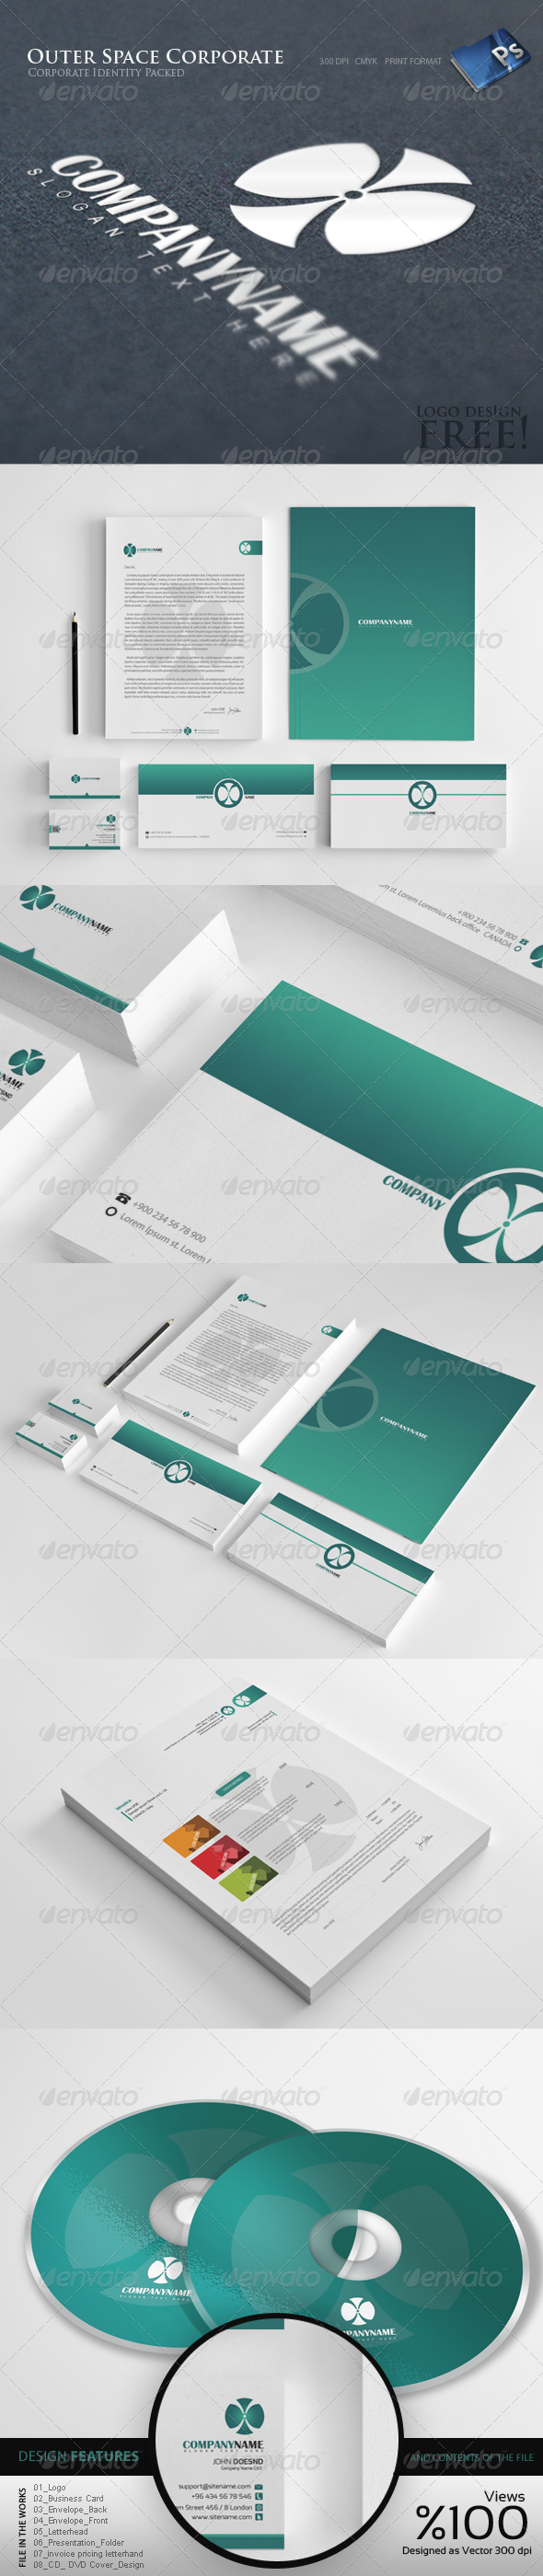 GraphicRiver Outer Space Corporate Identity 8 5193036